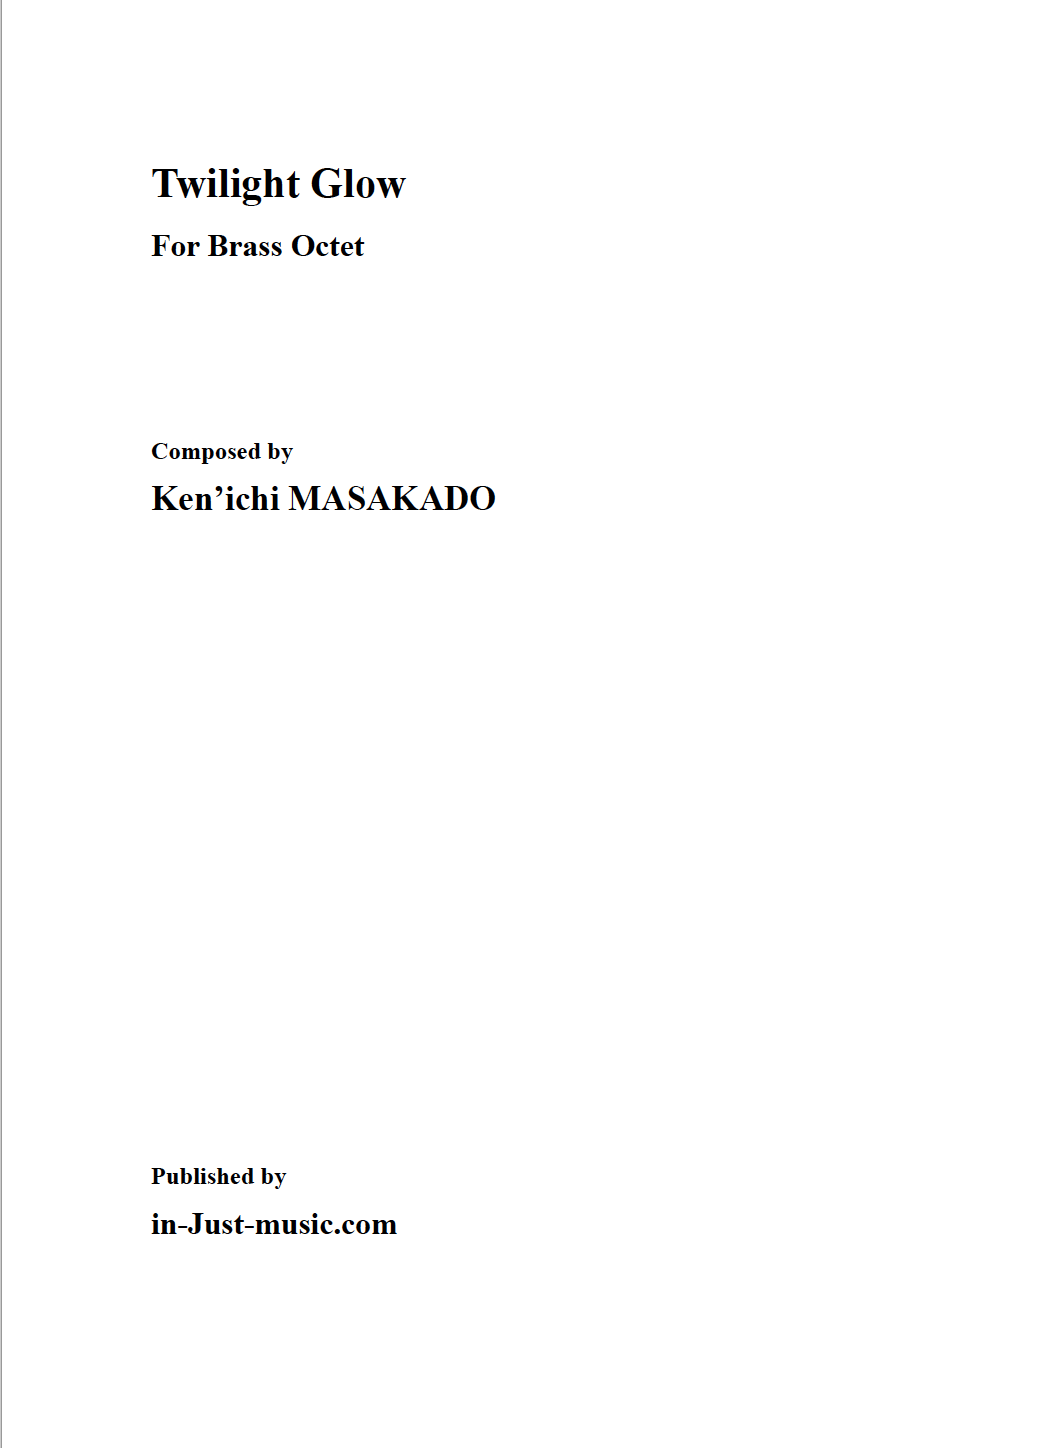 Twilight Glow, for Brass Octet (Score)